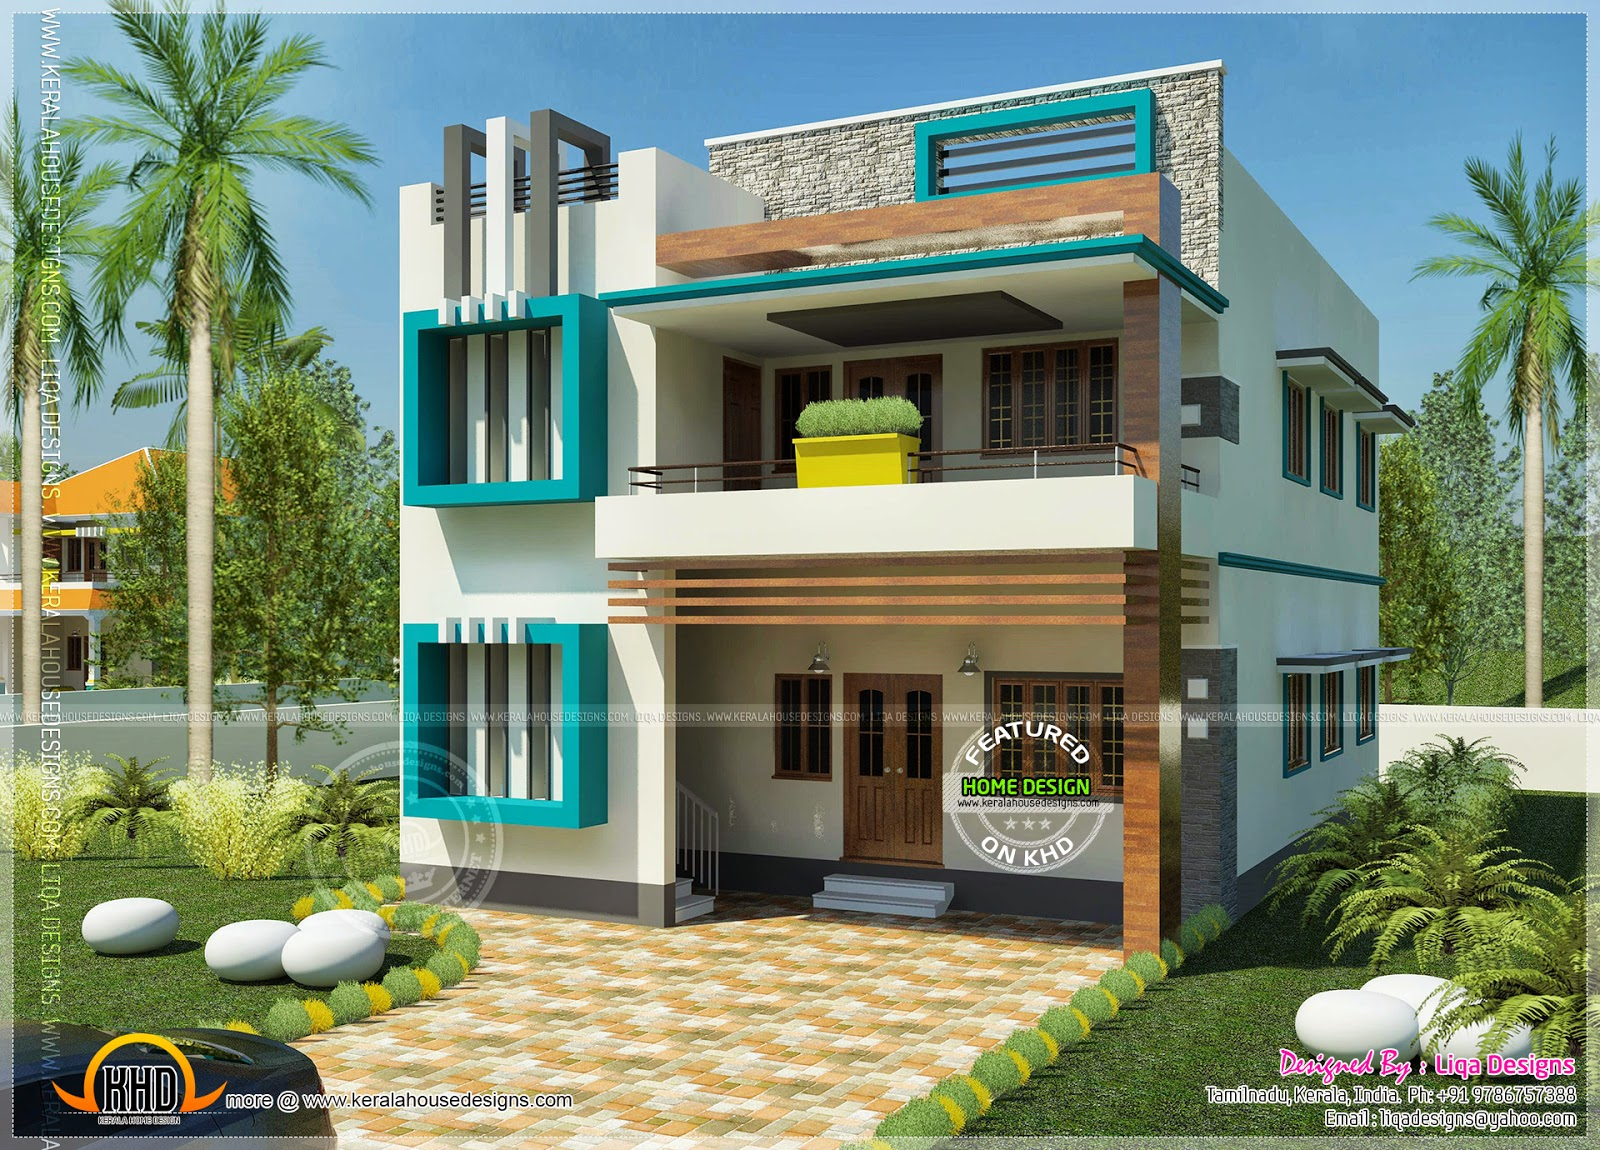 South indian contemporary home kerala home design and for Model house photos in indian